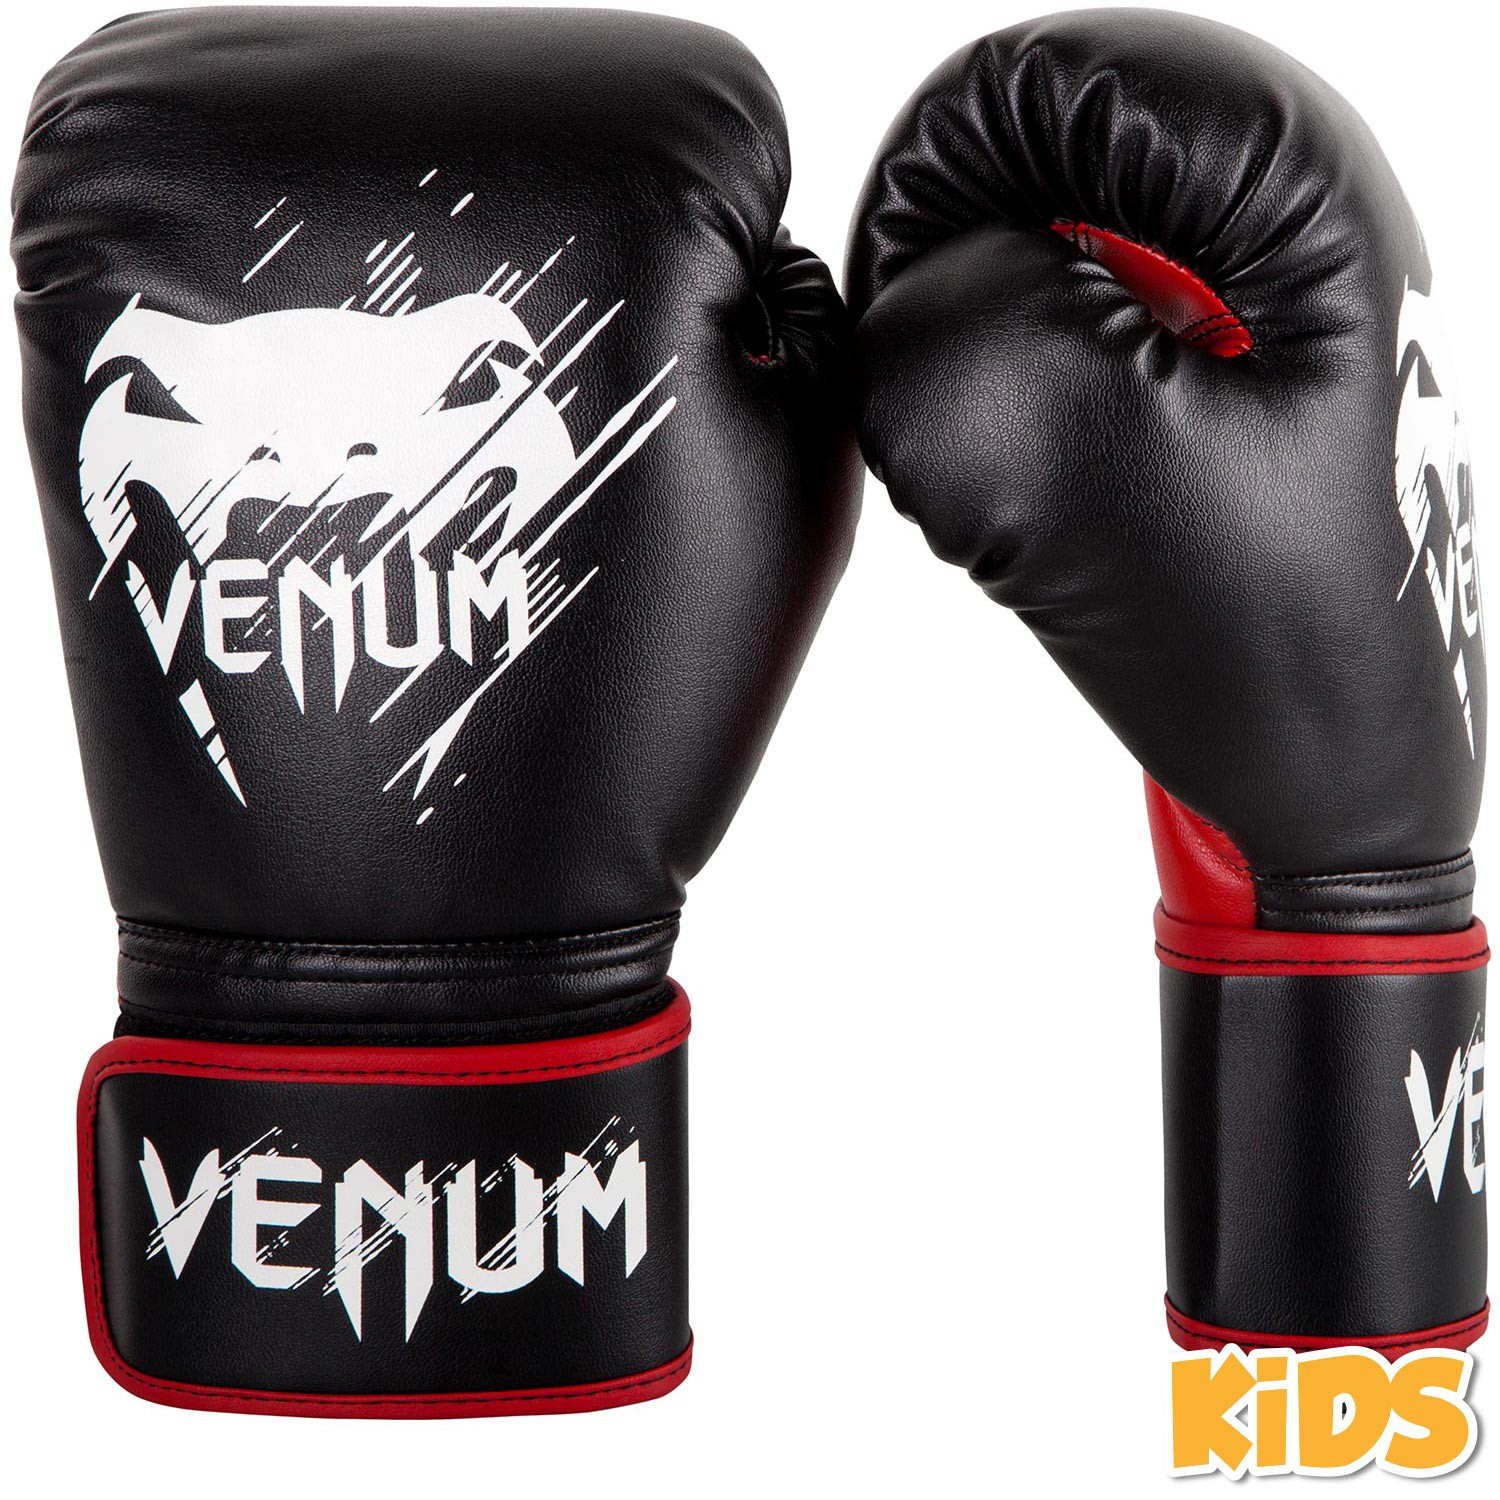 gants de boxe enfant venum gants de boxe mma. Black Bedroom Furniture Sets. Home Design Ideas